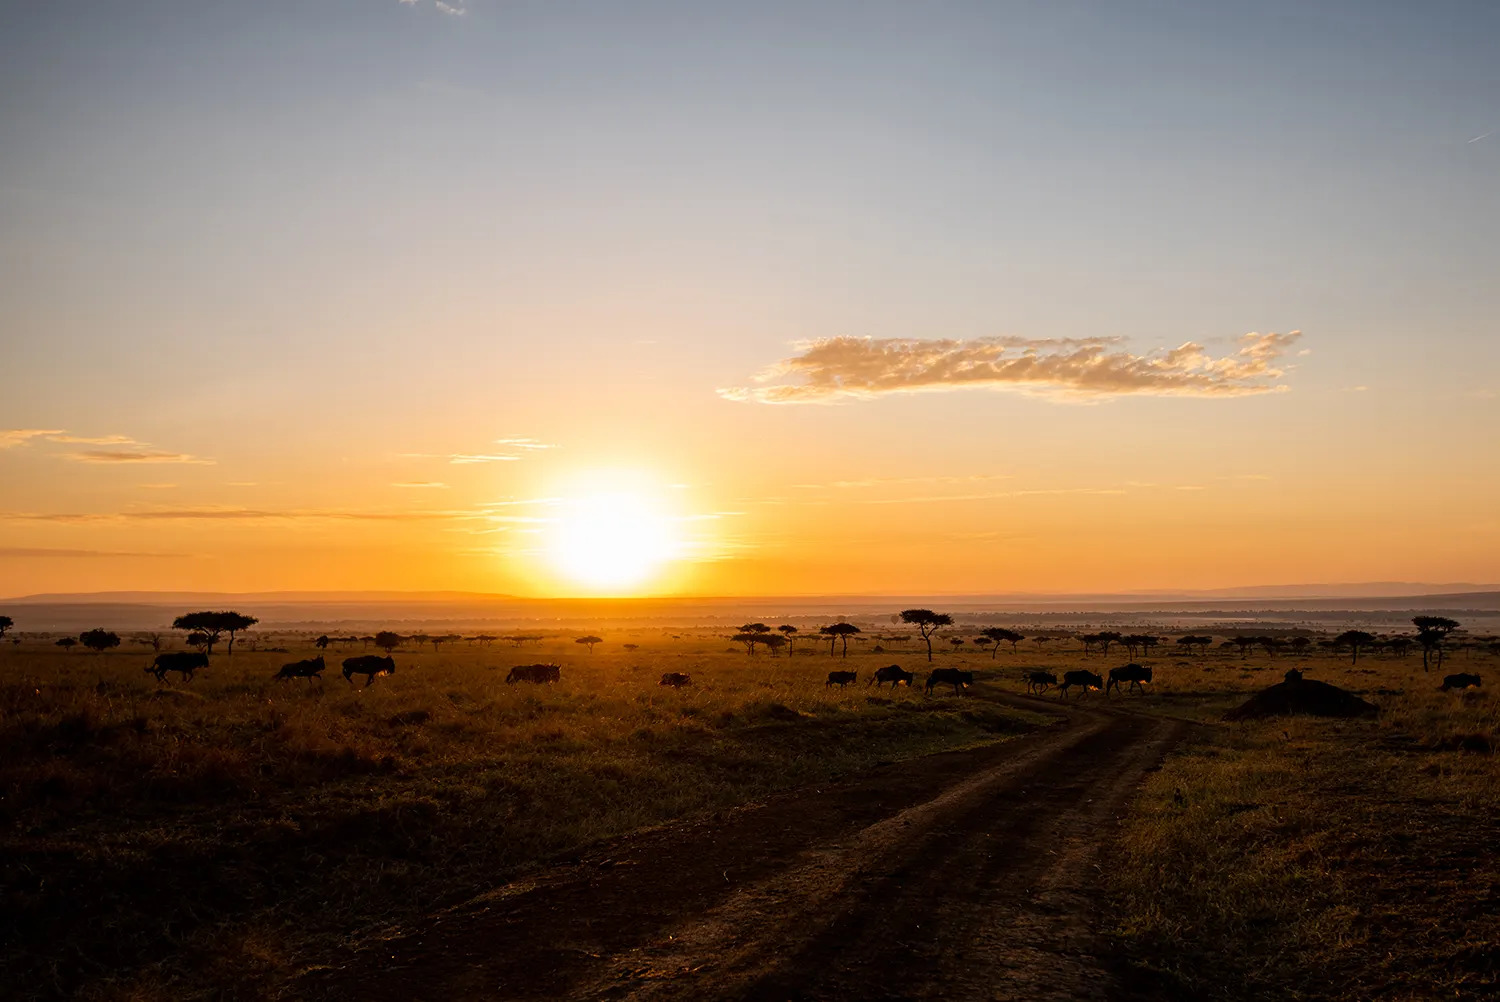 TNW_16_10_2018_Mara Sunrise Wildebeest